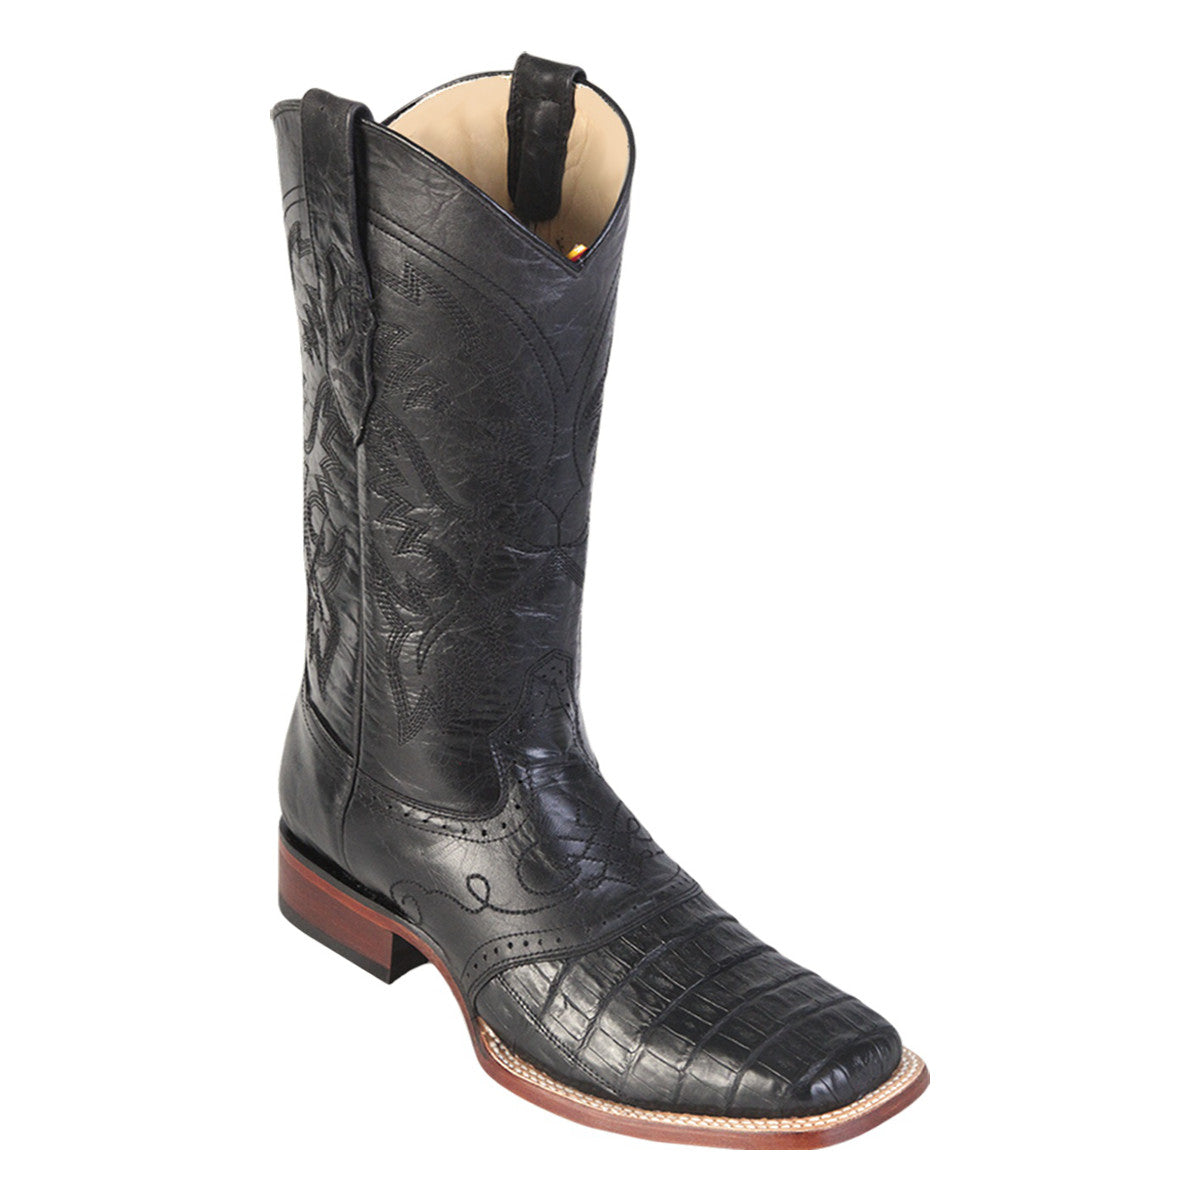 Los Altos Boots Wide Square Toe Caiman Belly w/Saddle